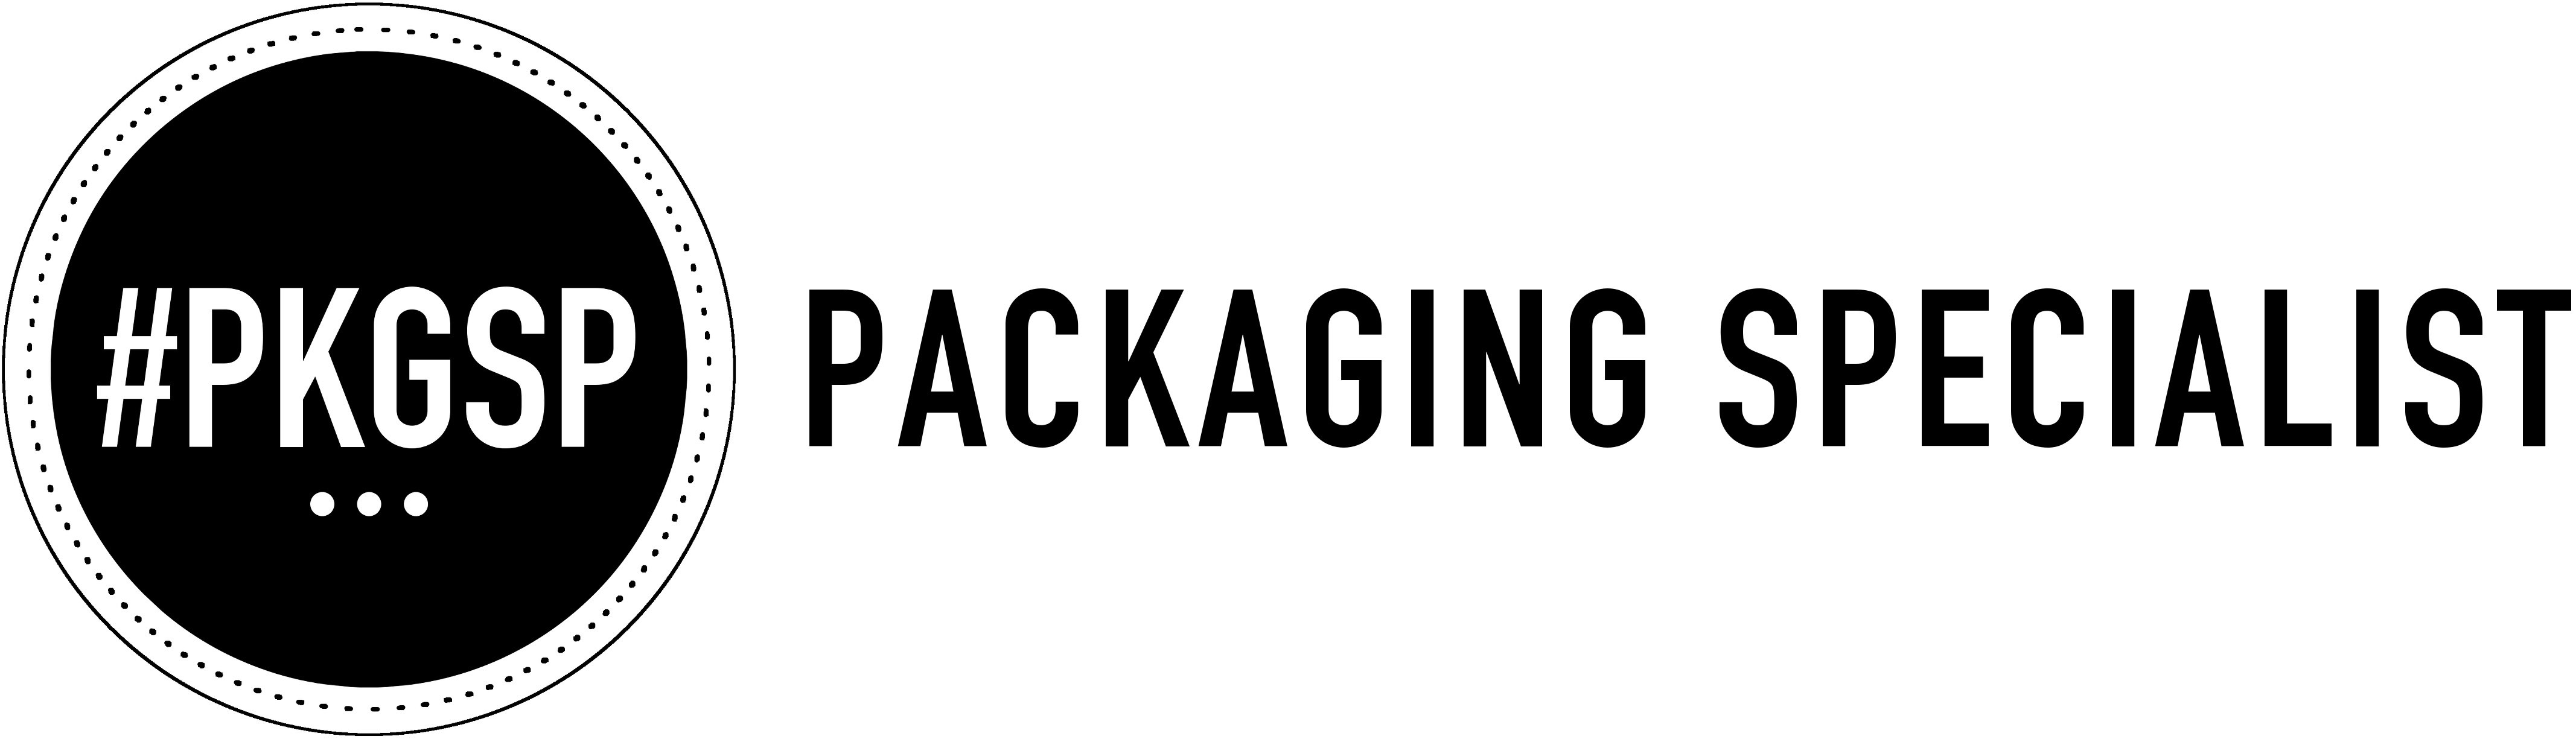 Packaging Specialist C.O. Talento sas